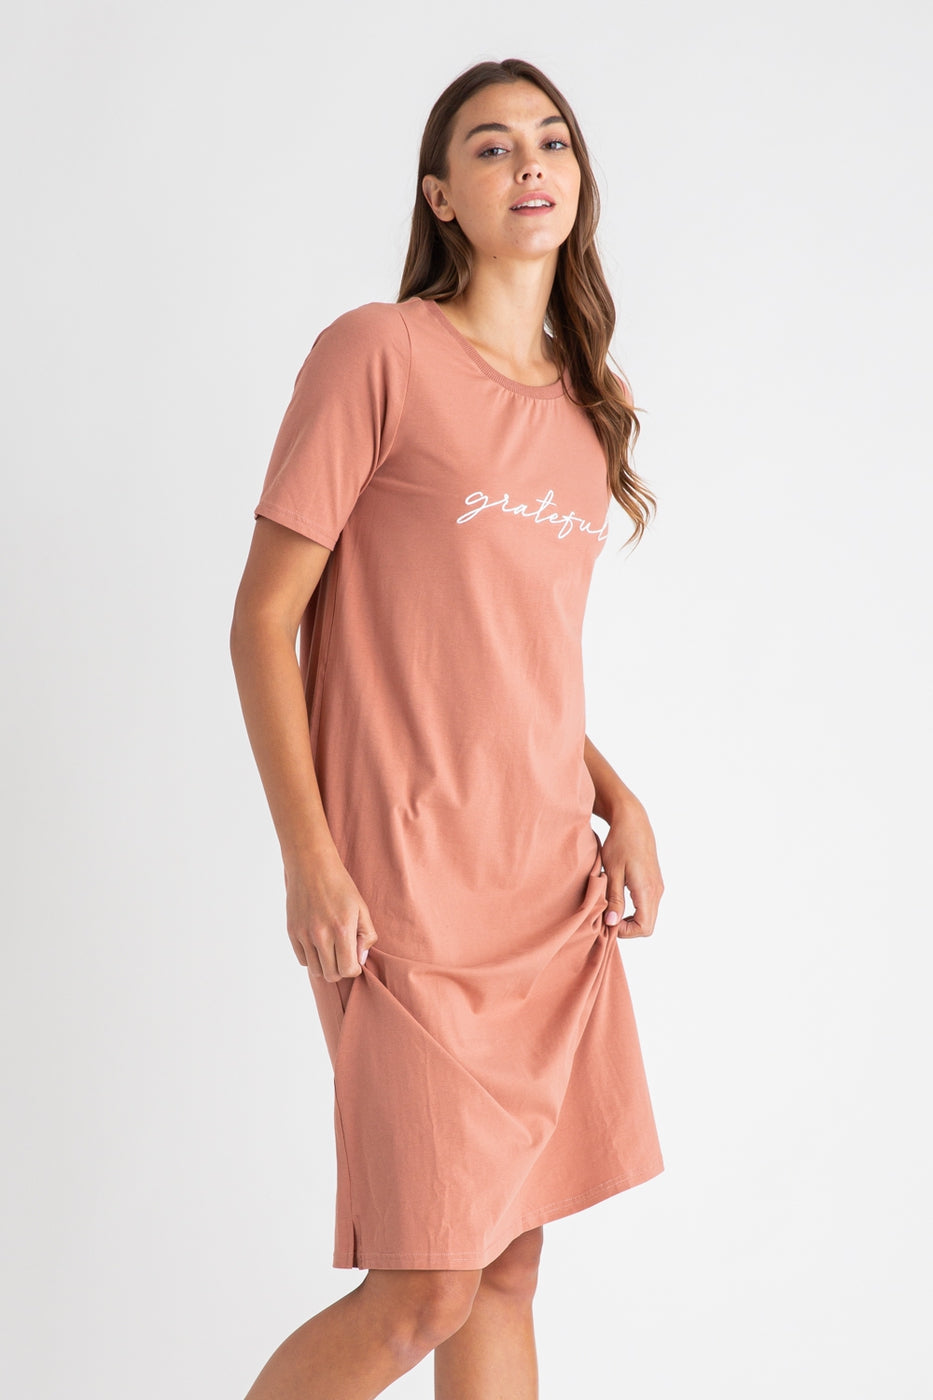 Grateful Tee Dress in Apricot